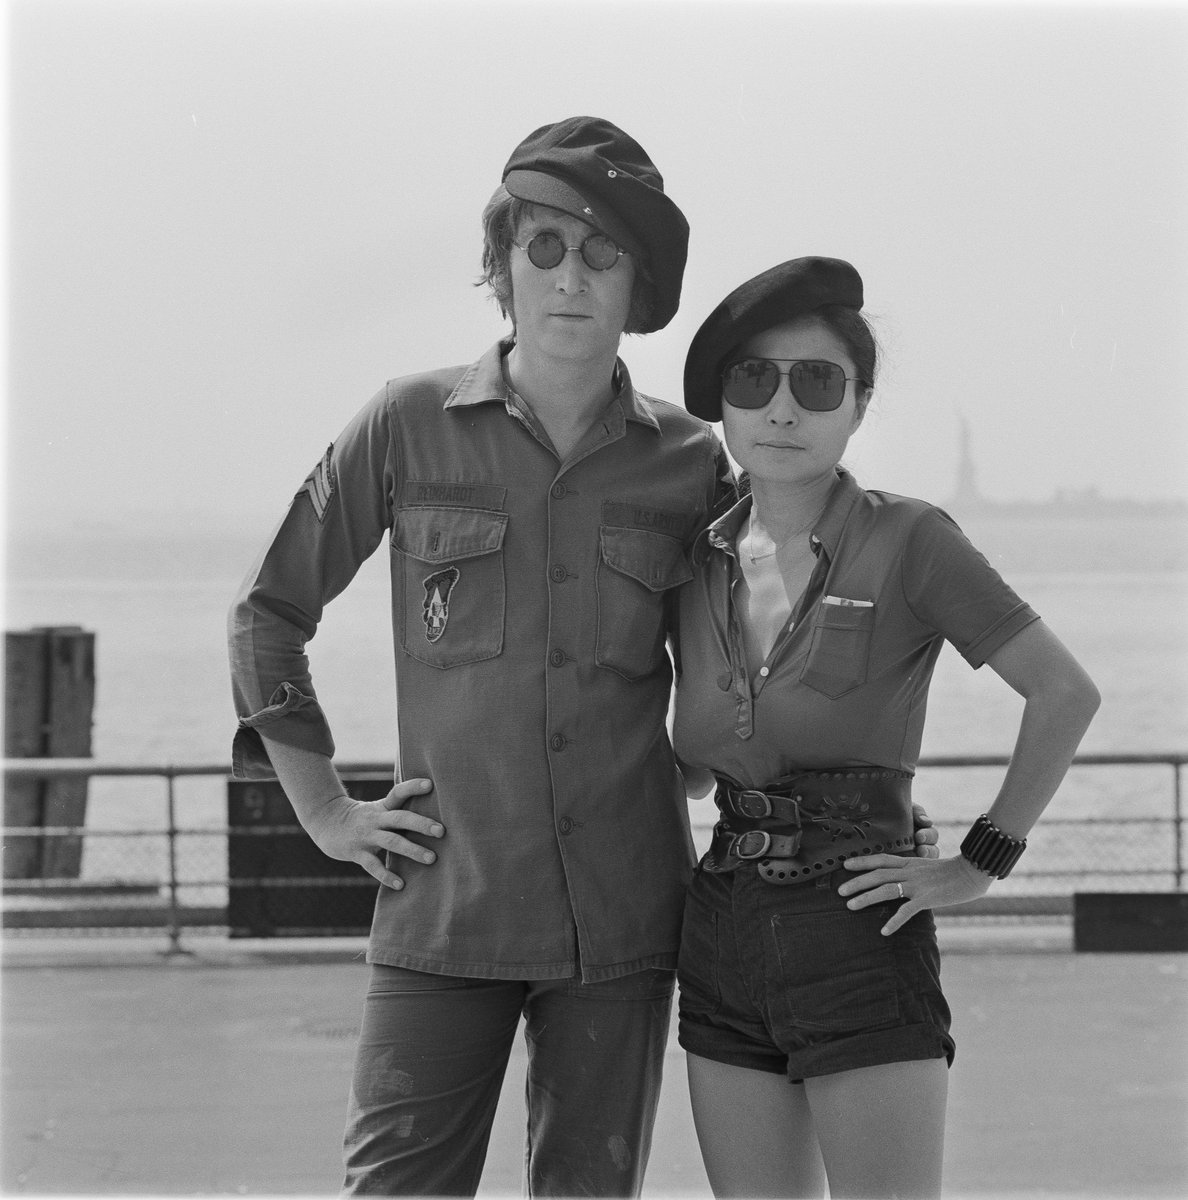 John Lennon And Yoko Ono In Battery Park NYC Statue Of Liberty Is